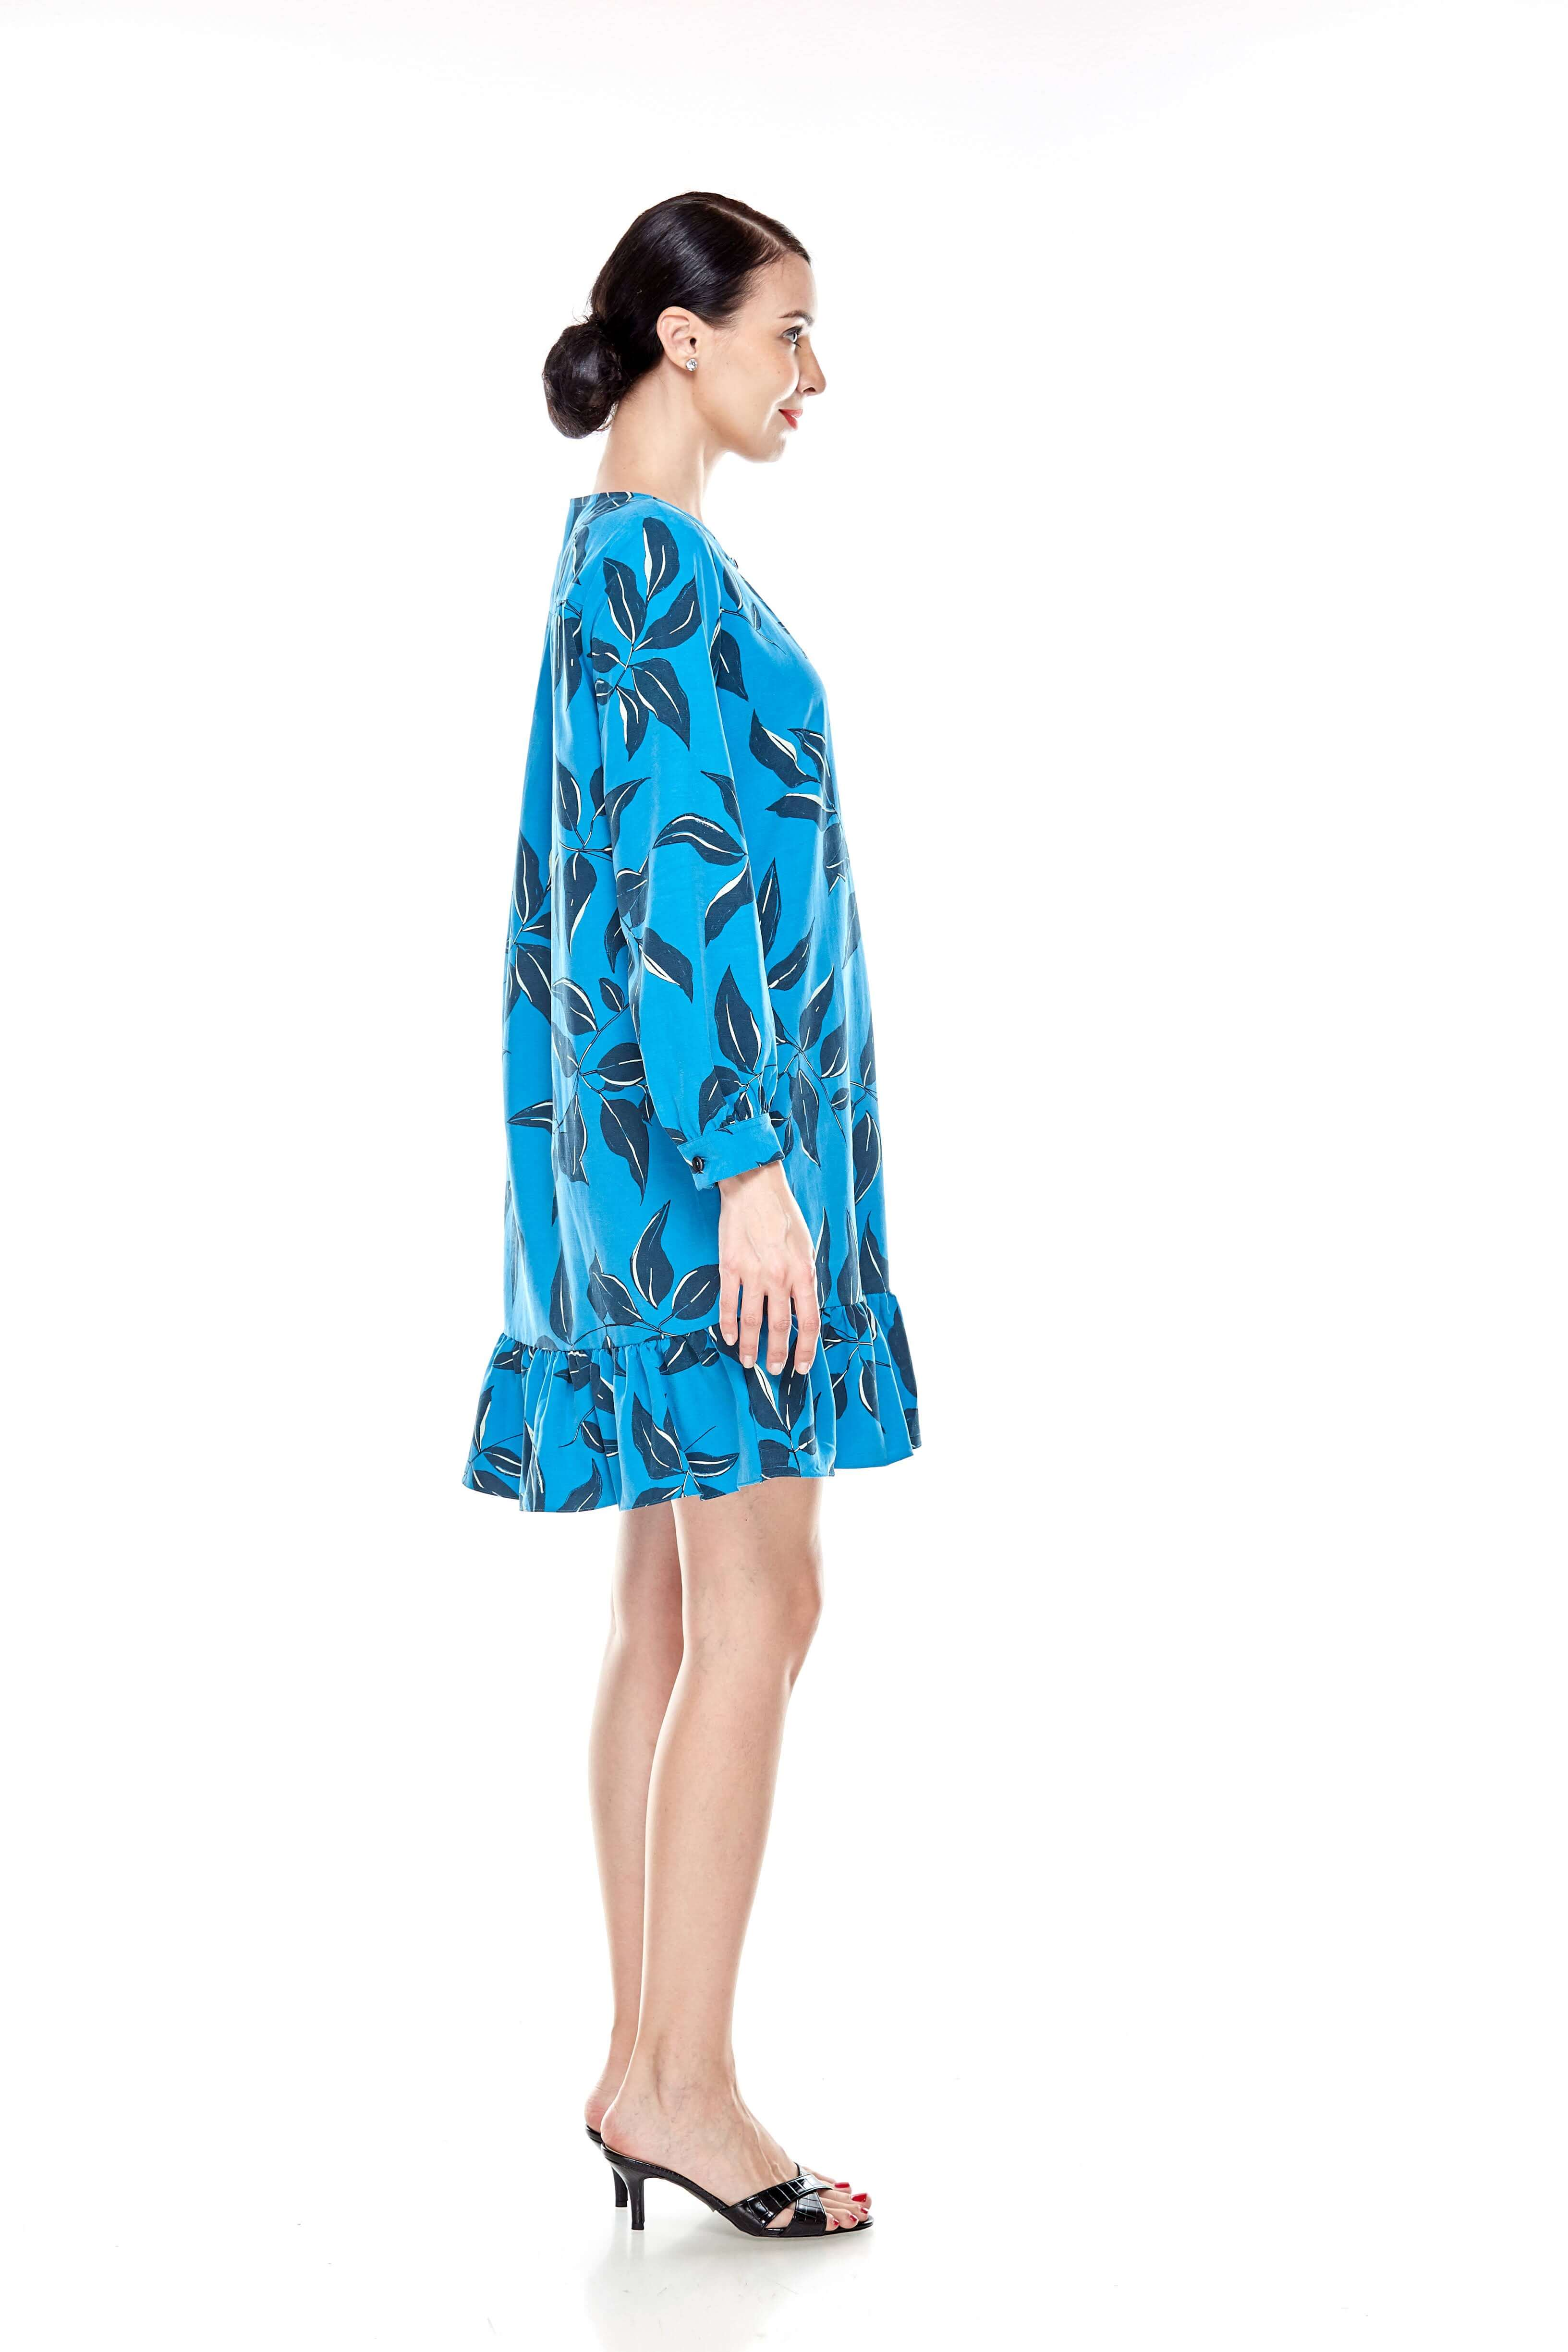 Mosaic Blue Printed Tunic With Bow Sleeves (6)